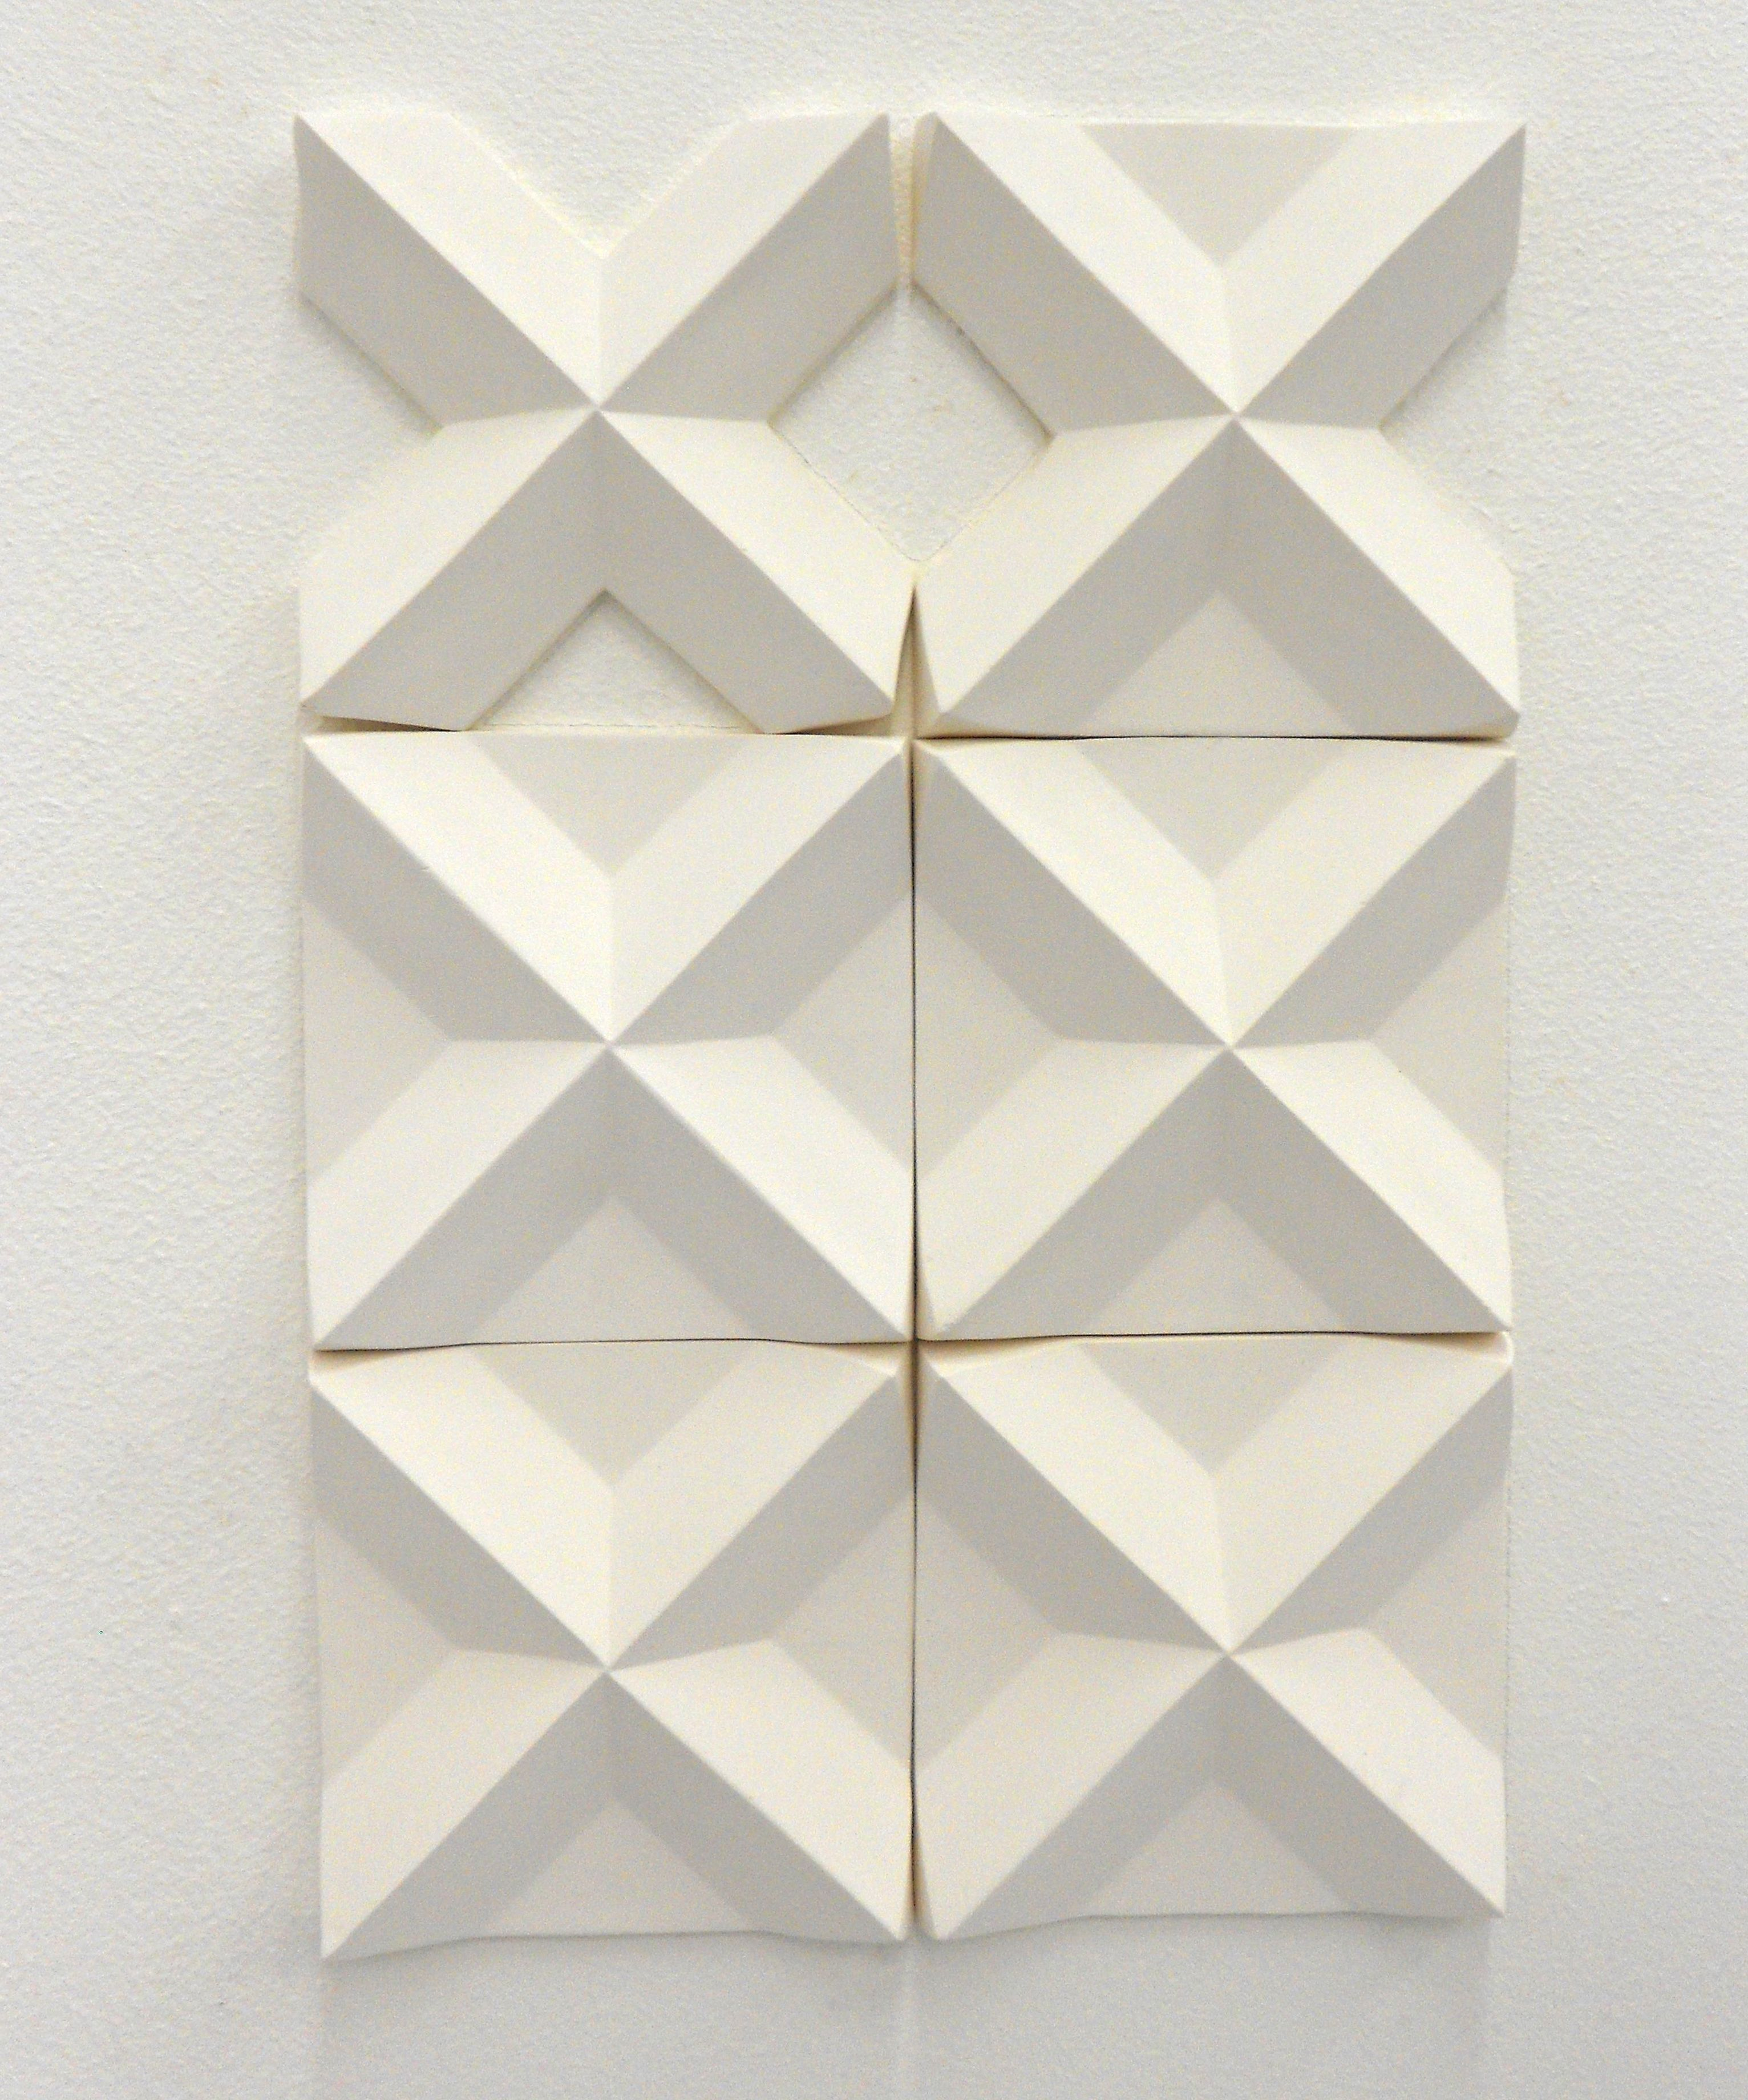 3D Wall Installation Tiles By Agnieszka Robak 2012